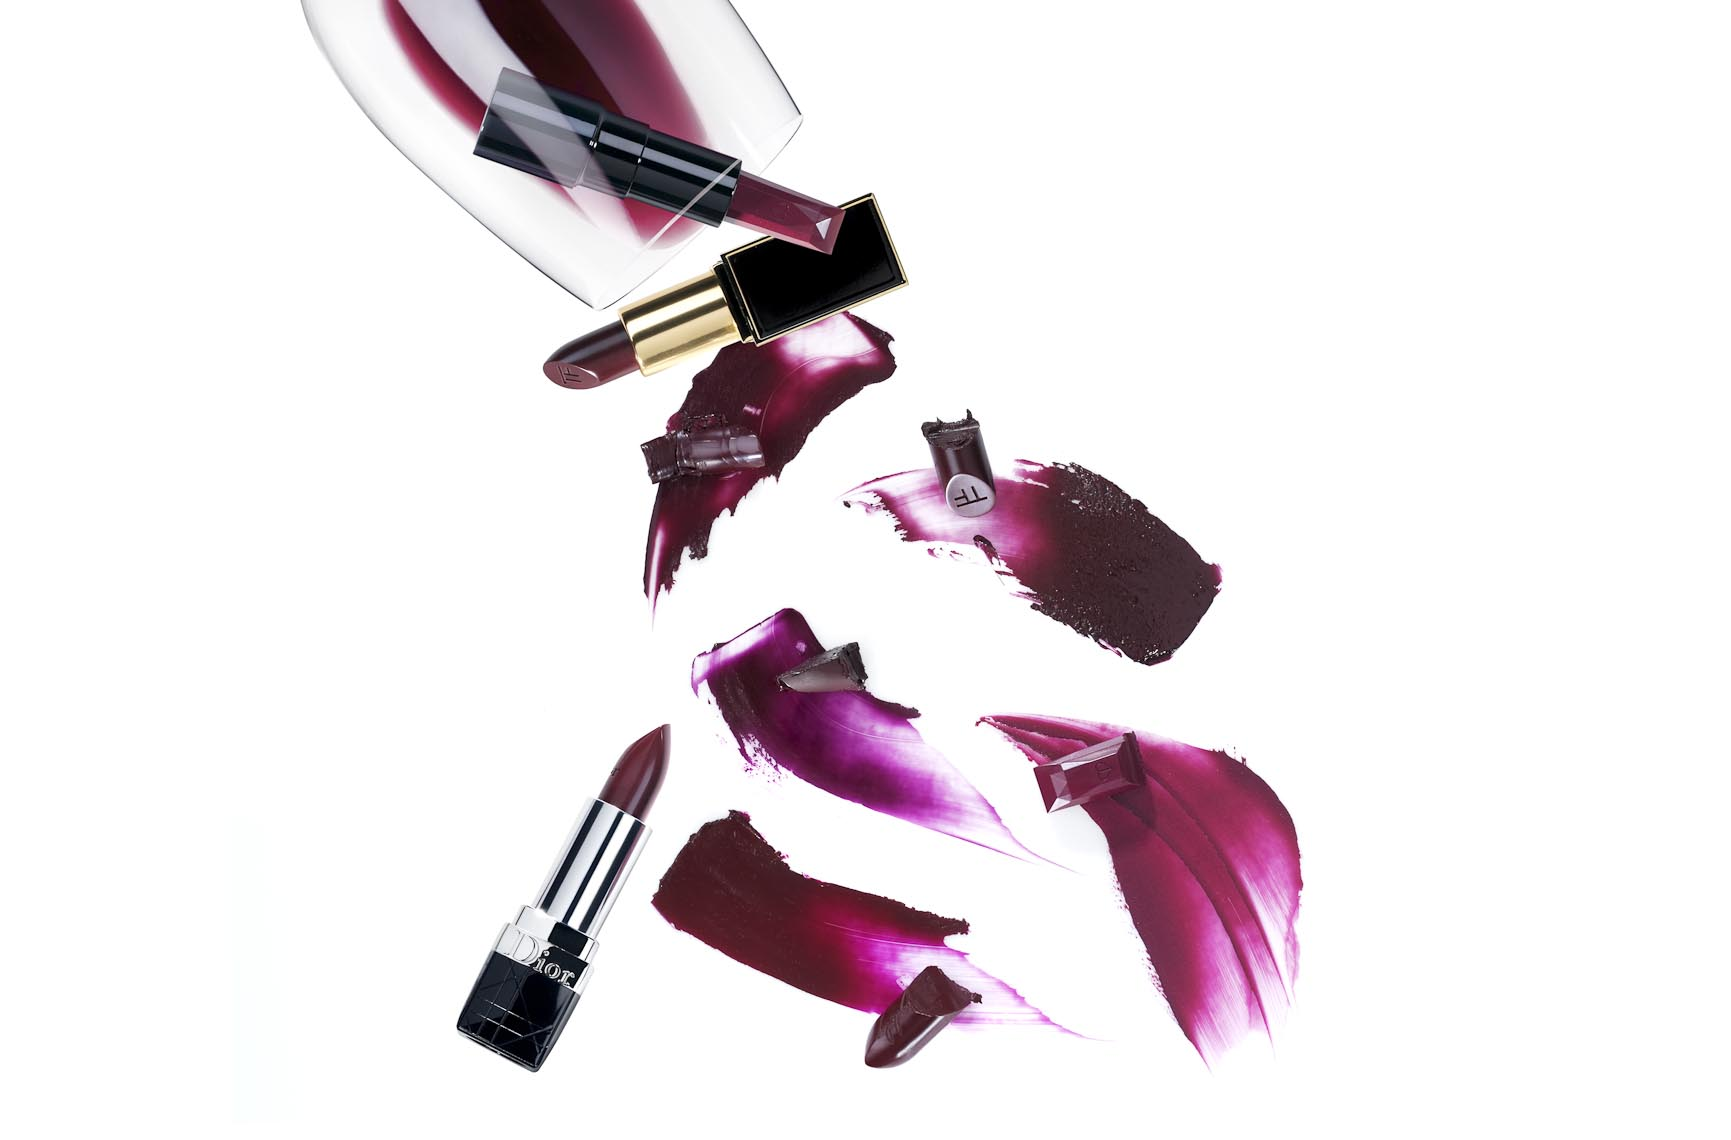 Cosmetics, Burgundy Color Lipsticks and Swooshes - Mike Lorrig